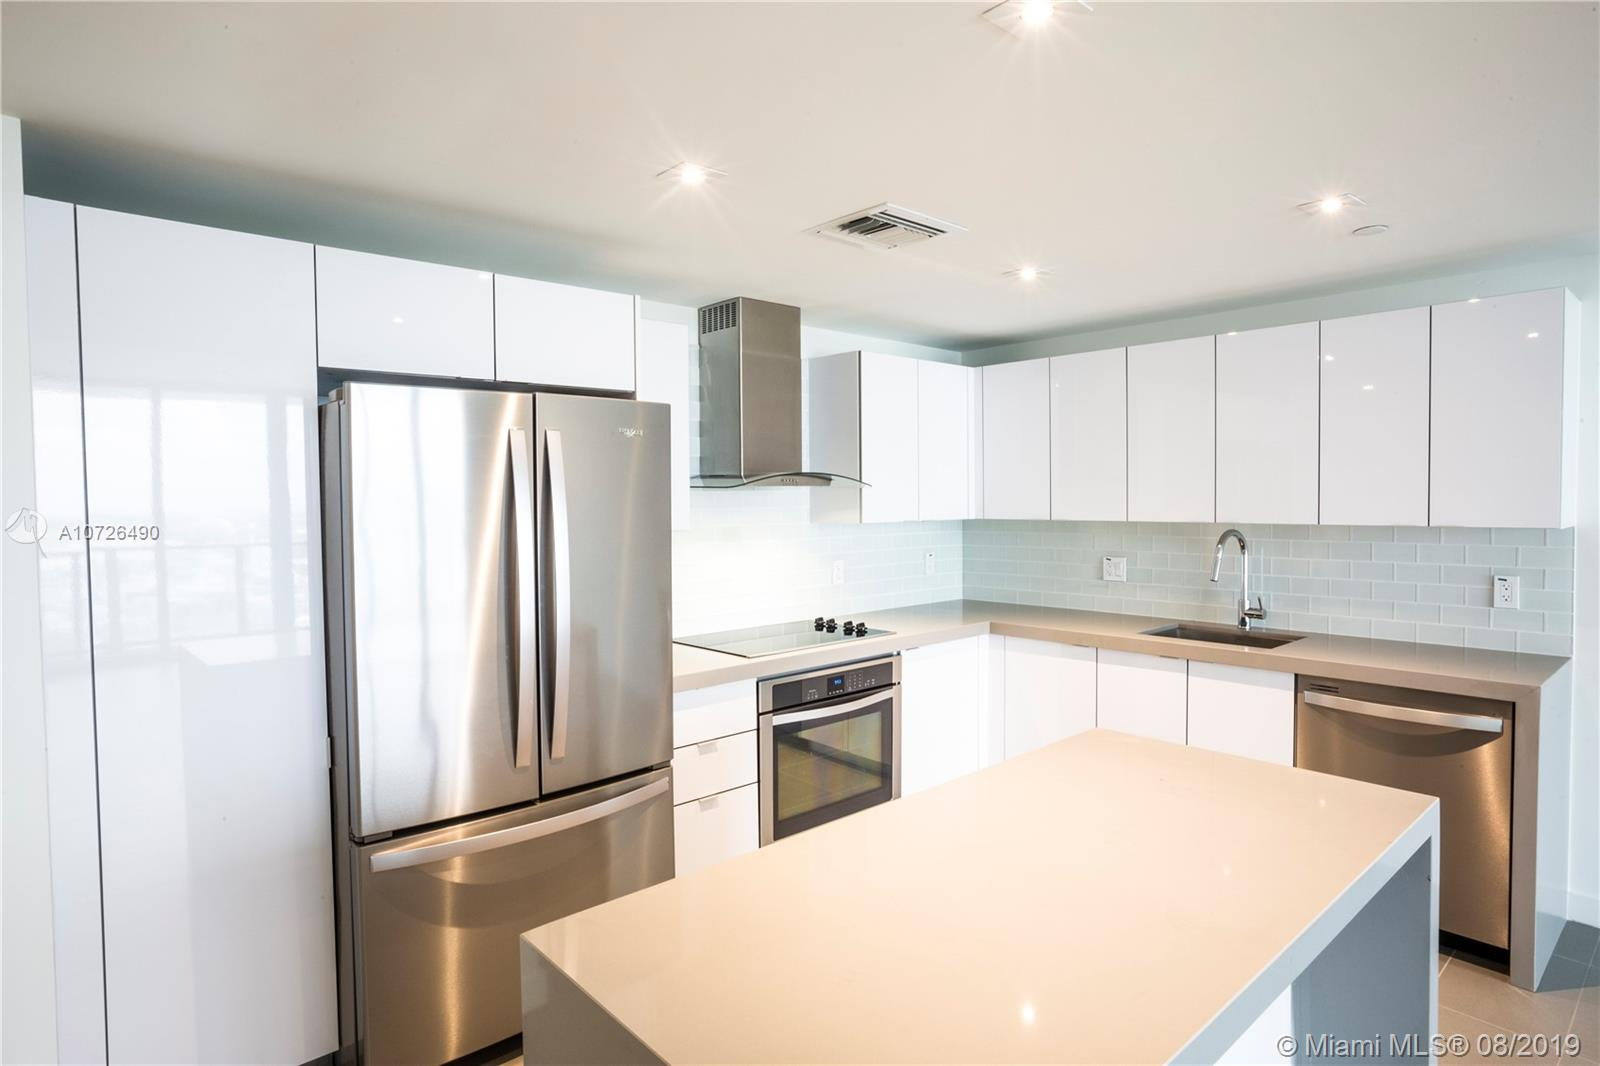 1600 NE 1ST AVE #3318 For Sale A10726490, FL